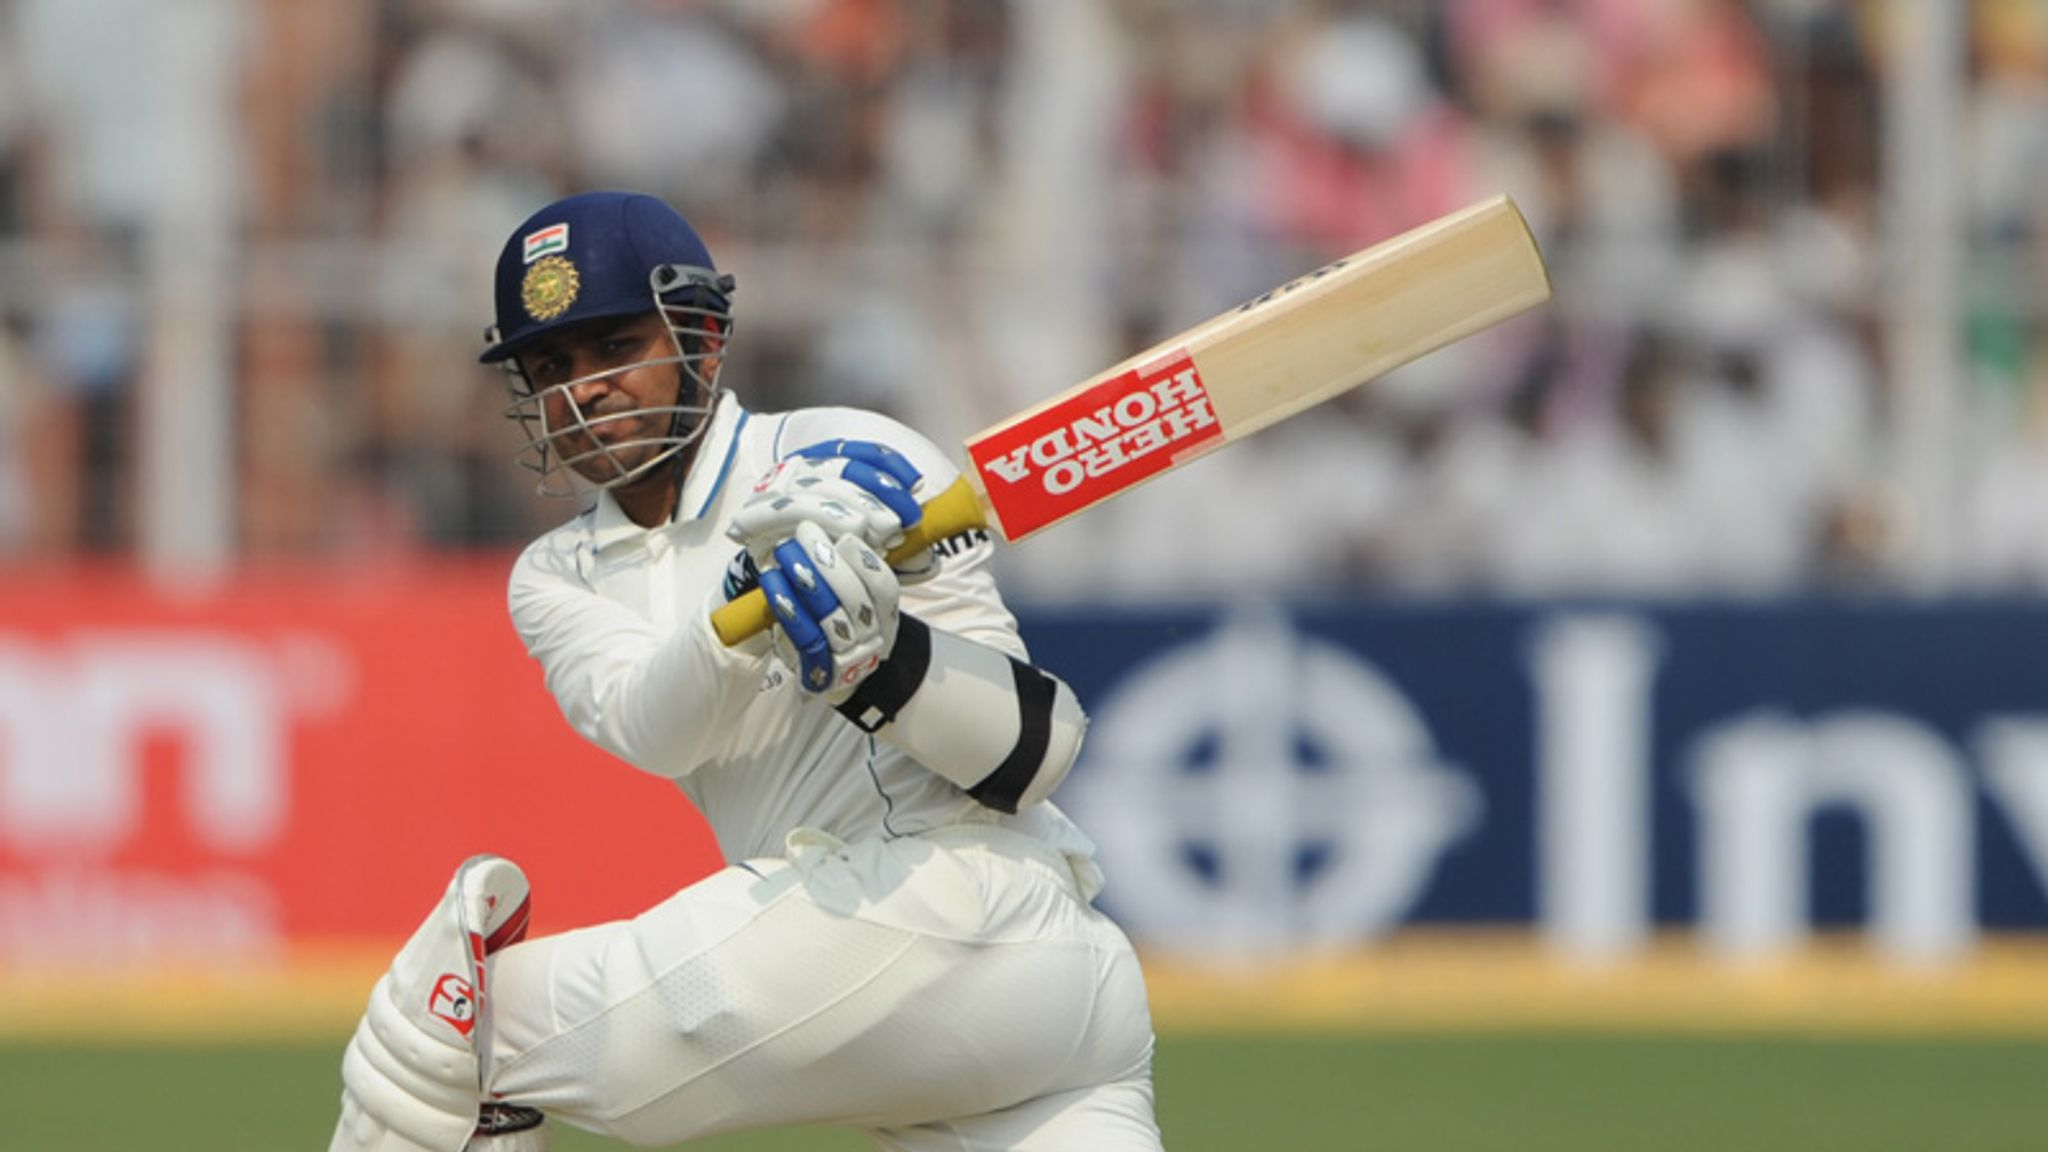 Sehwag first inning betting redskins vs vikings betting predictions today